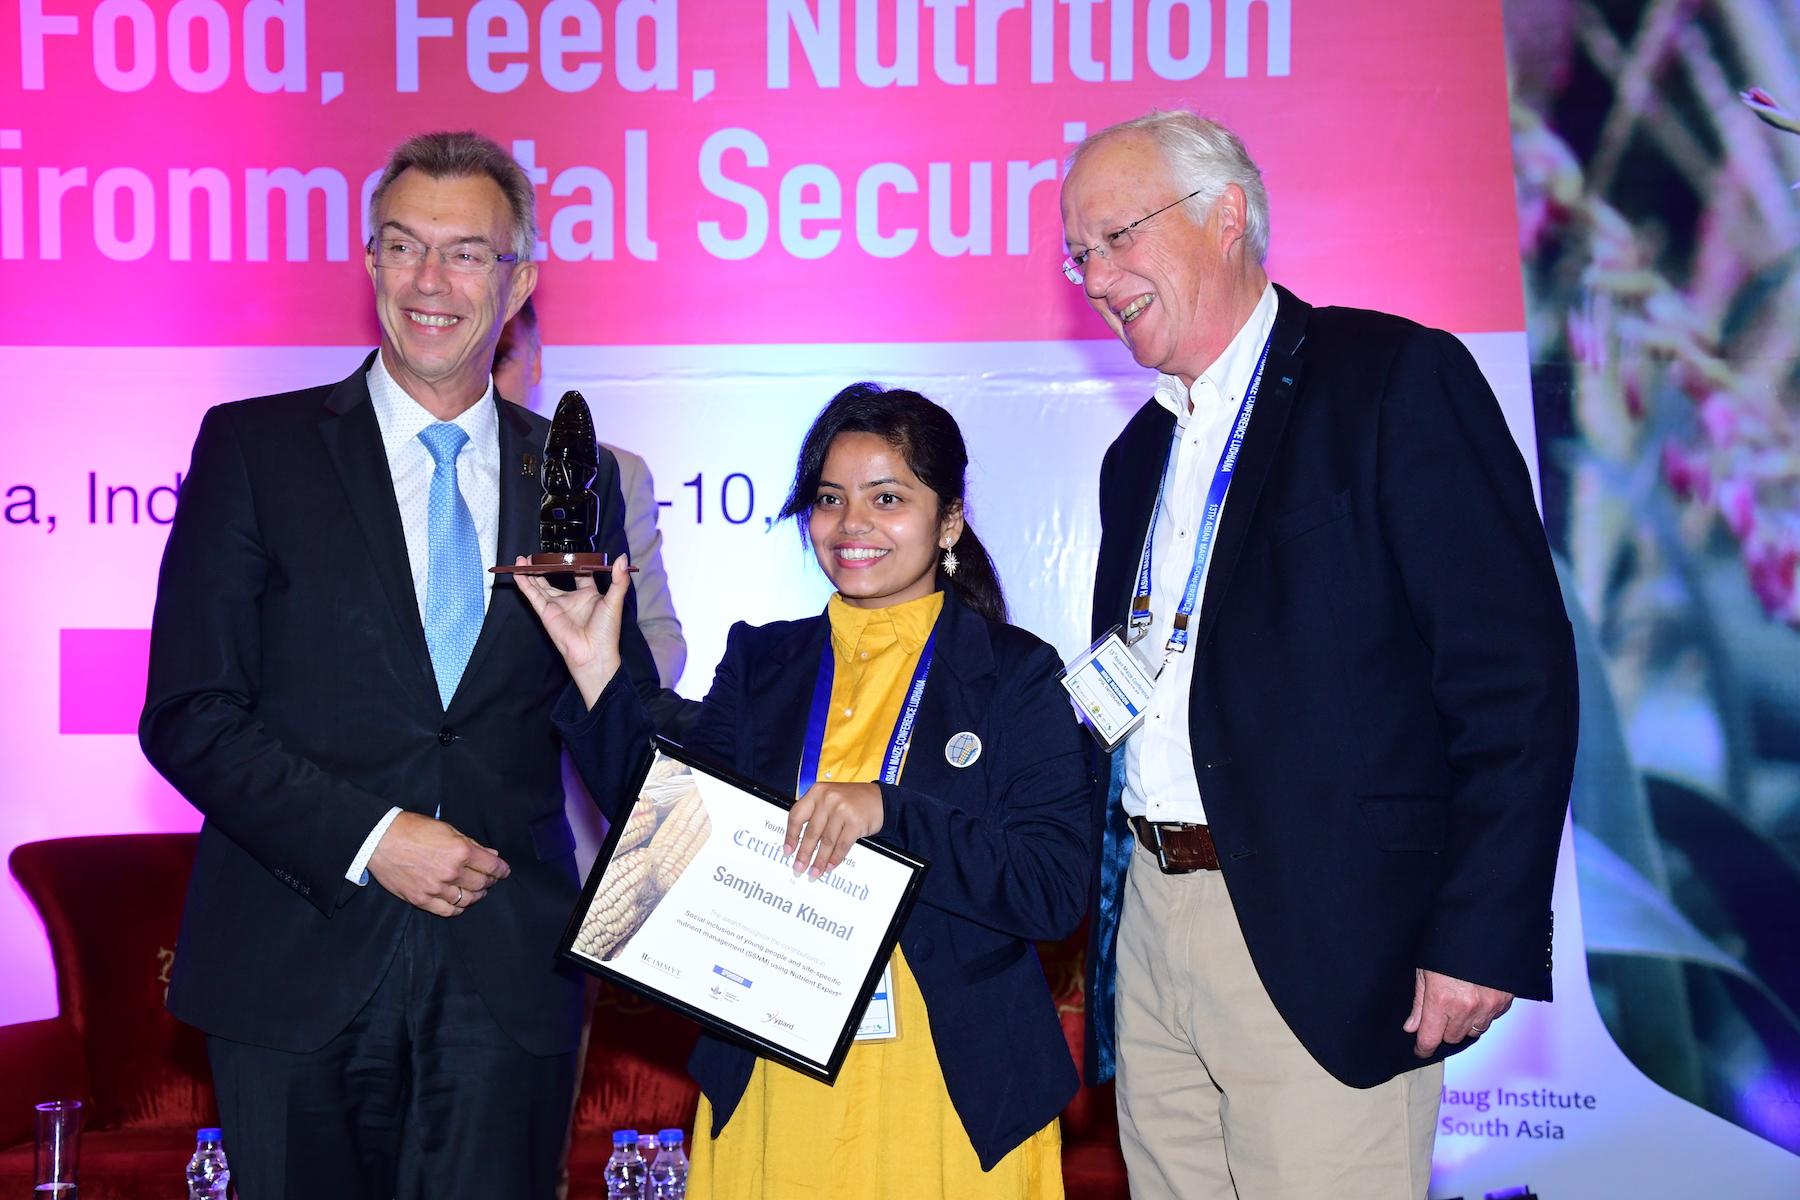 The Director General of CIMMYT, Martin Kropff (left), and the Chair of the MAIZE Independent Steering Committee, Michael Robinson (right), present Samjhana Khanal with the 2018 MAIZE-Asia Youth Innovator Award in the category of Change Agent. (Photo: Manjit Singh/Punjab Agricultural University)